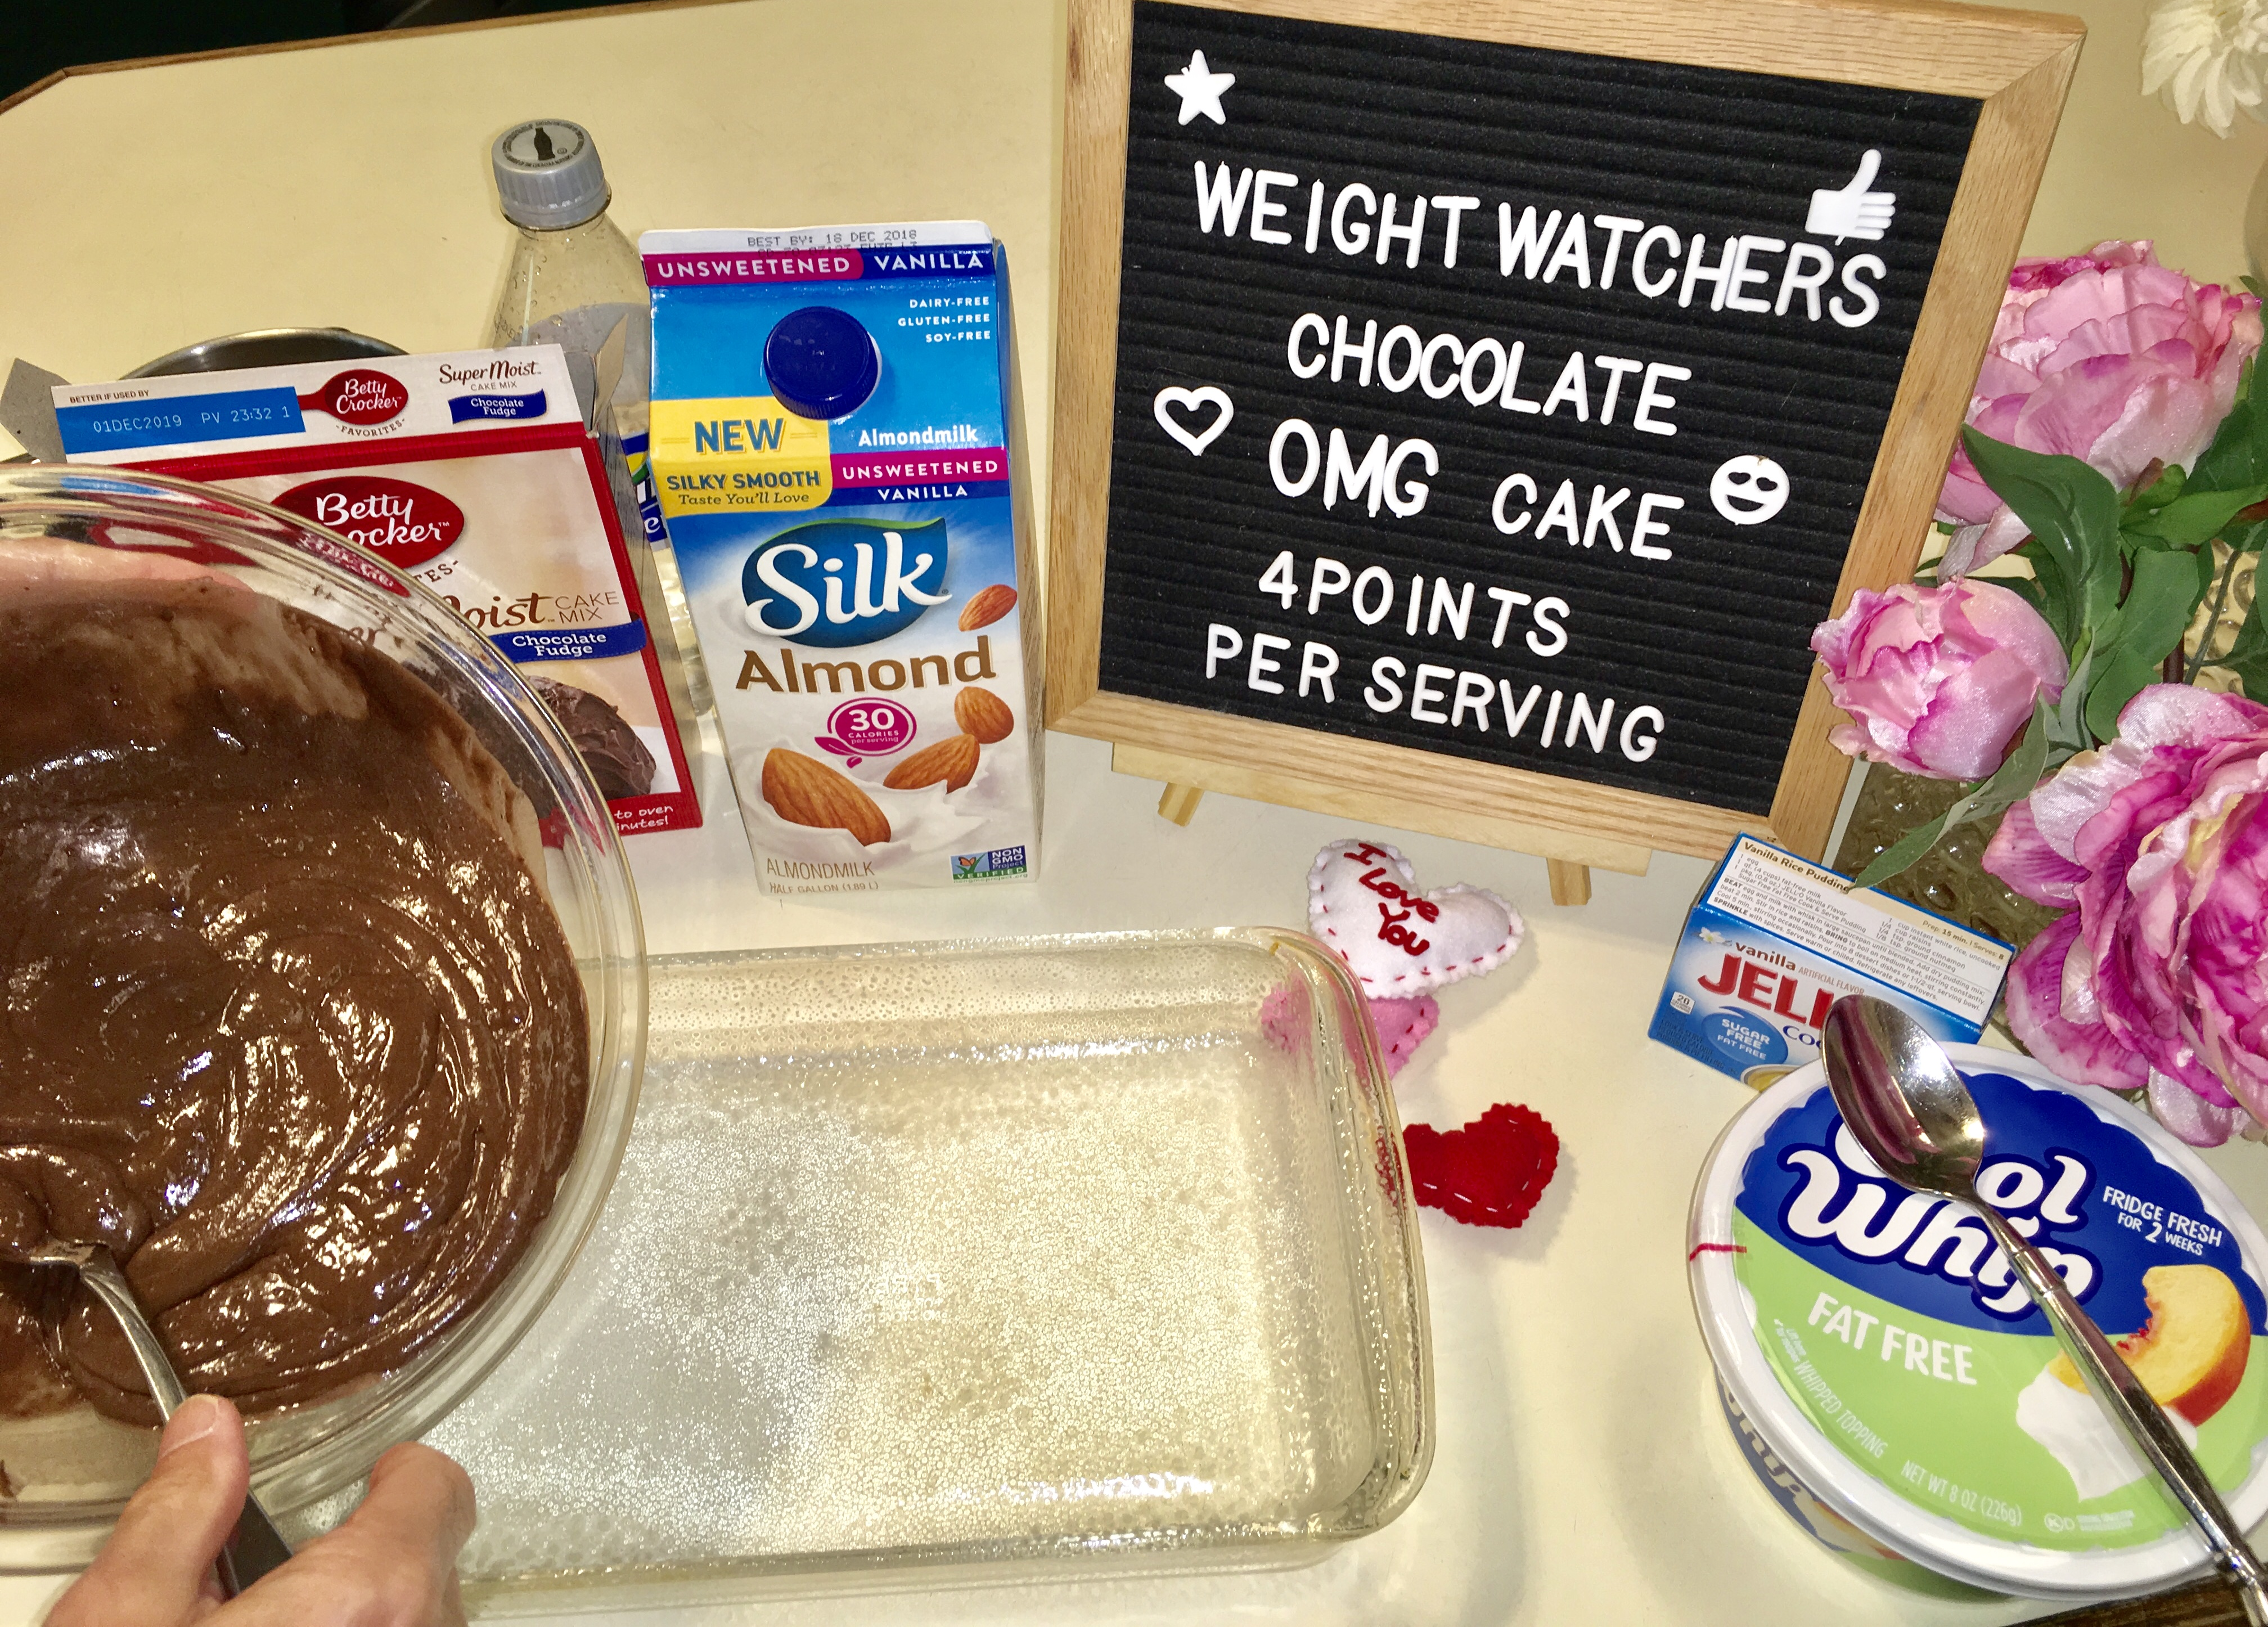 Weight Watchers Chocolate OMG Cake